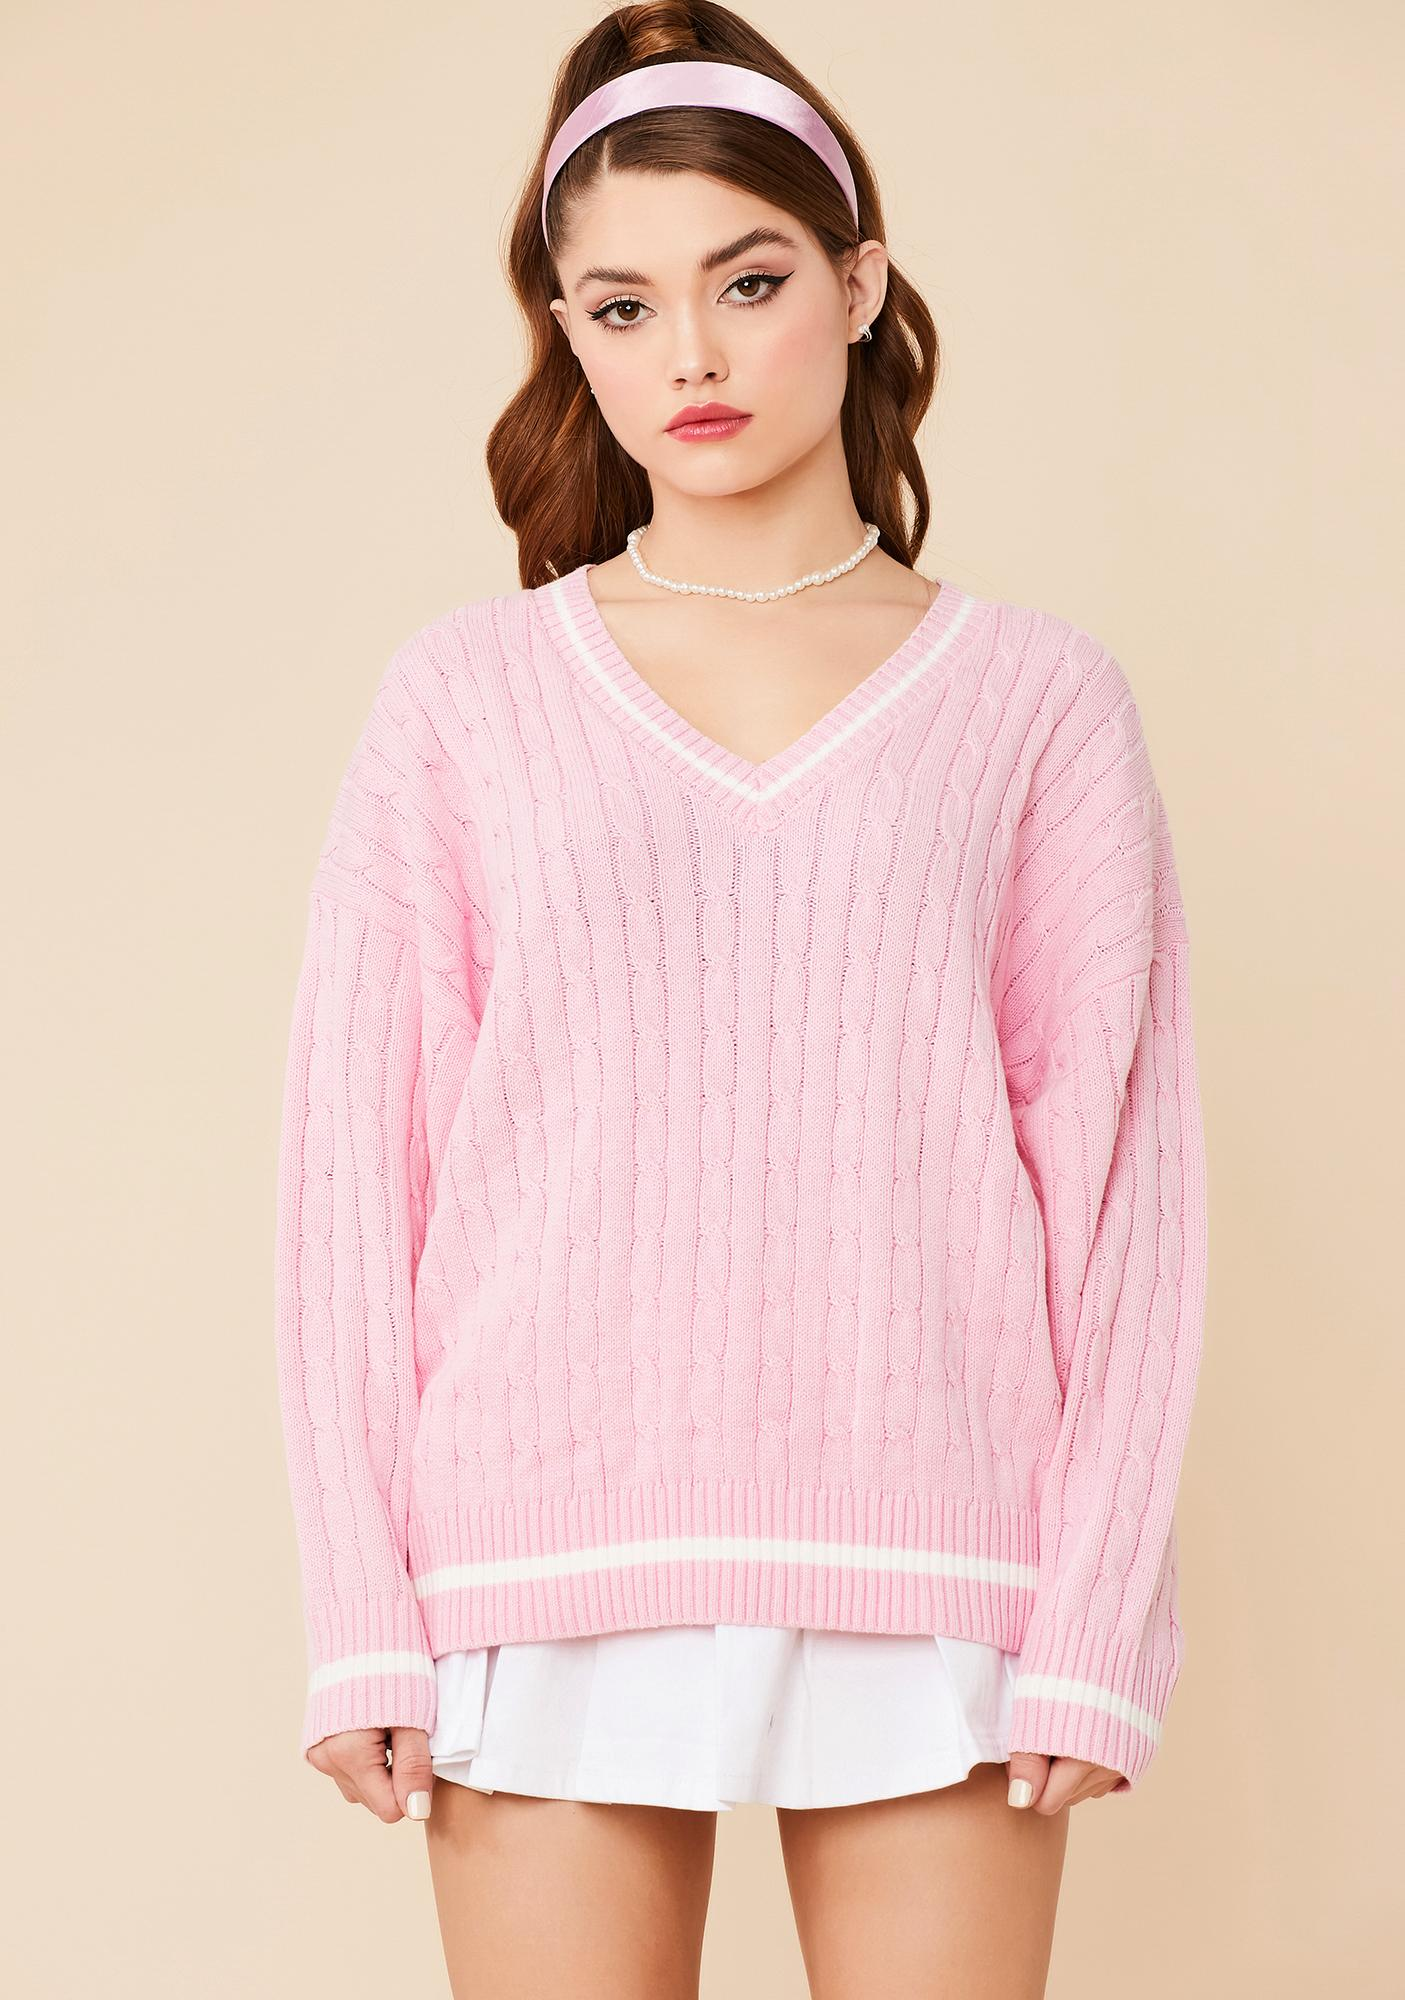 Catch Me On Campus Knit Sweater